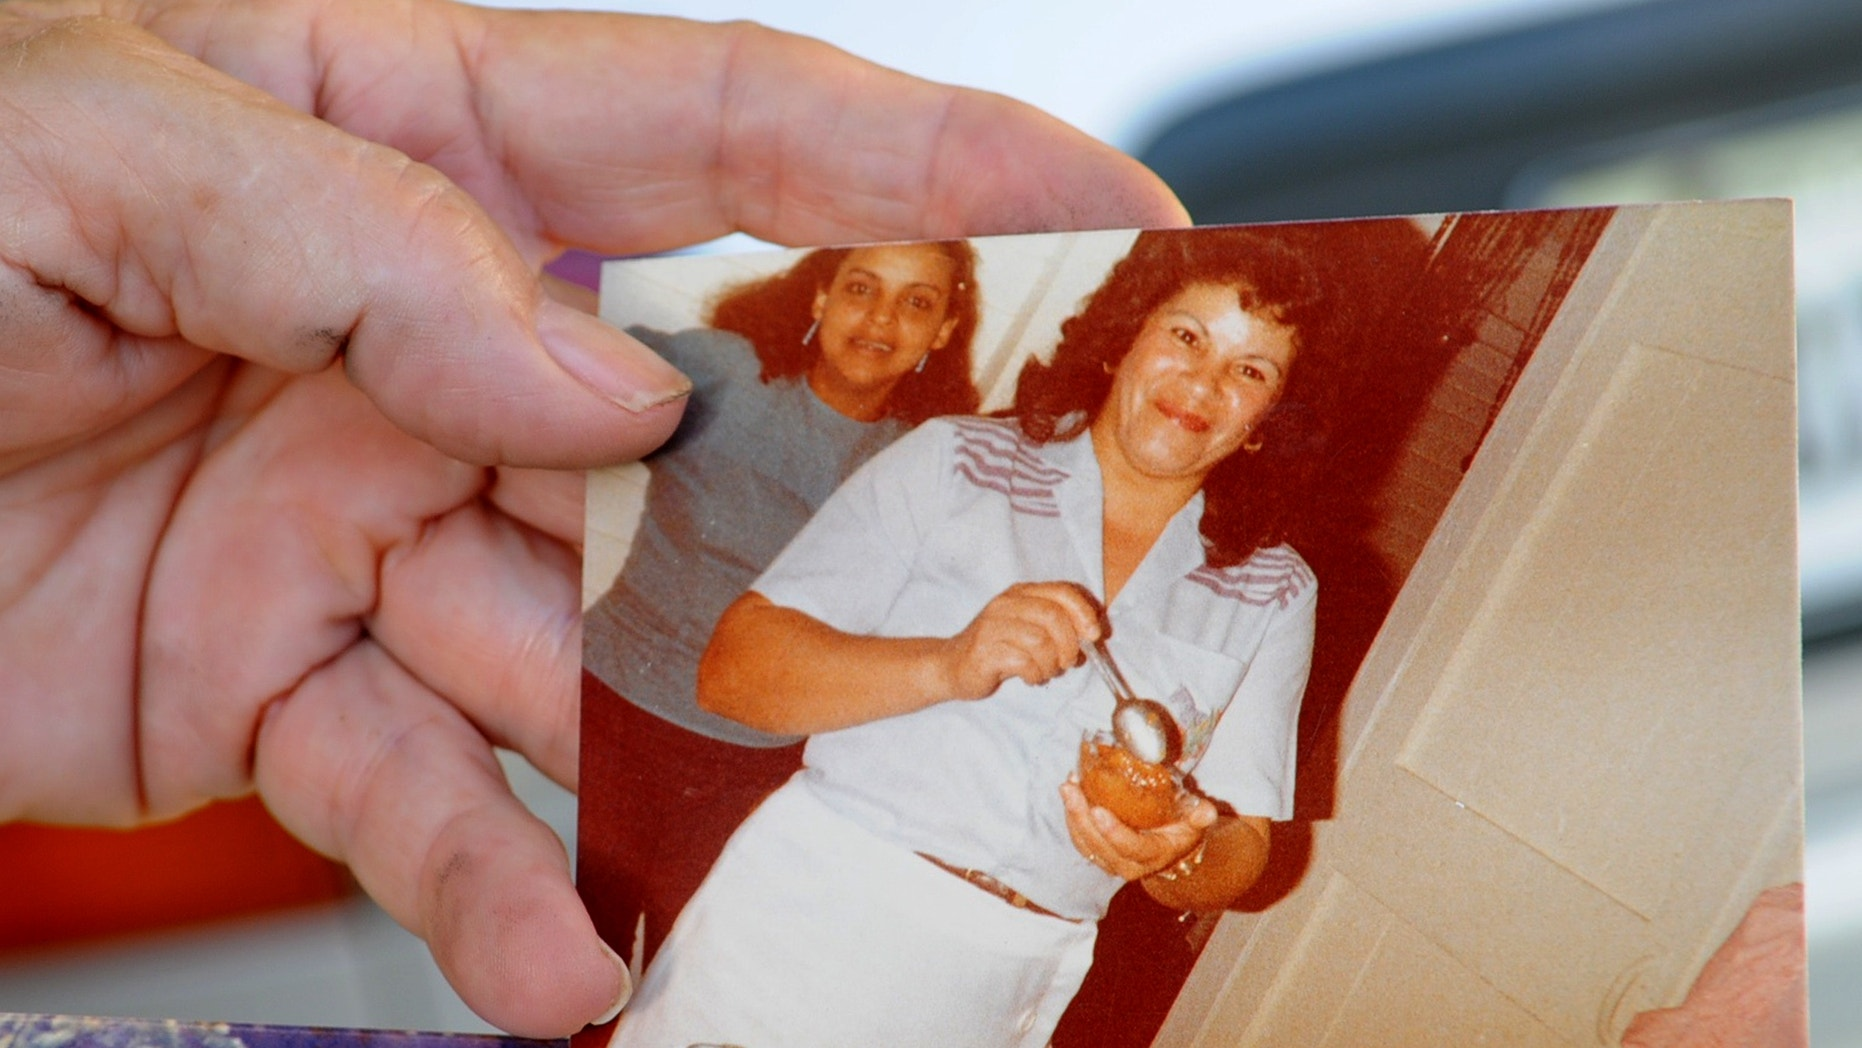 Miladys Ortega shows a photograph of her sister, Yoselyn Ortega, front center, taken some time between 1985 and 1990, at her home in Santiago, Dominican Republic, Saturday, Oct. 27, 2012.